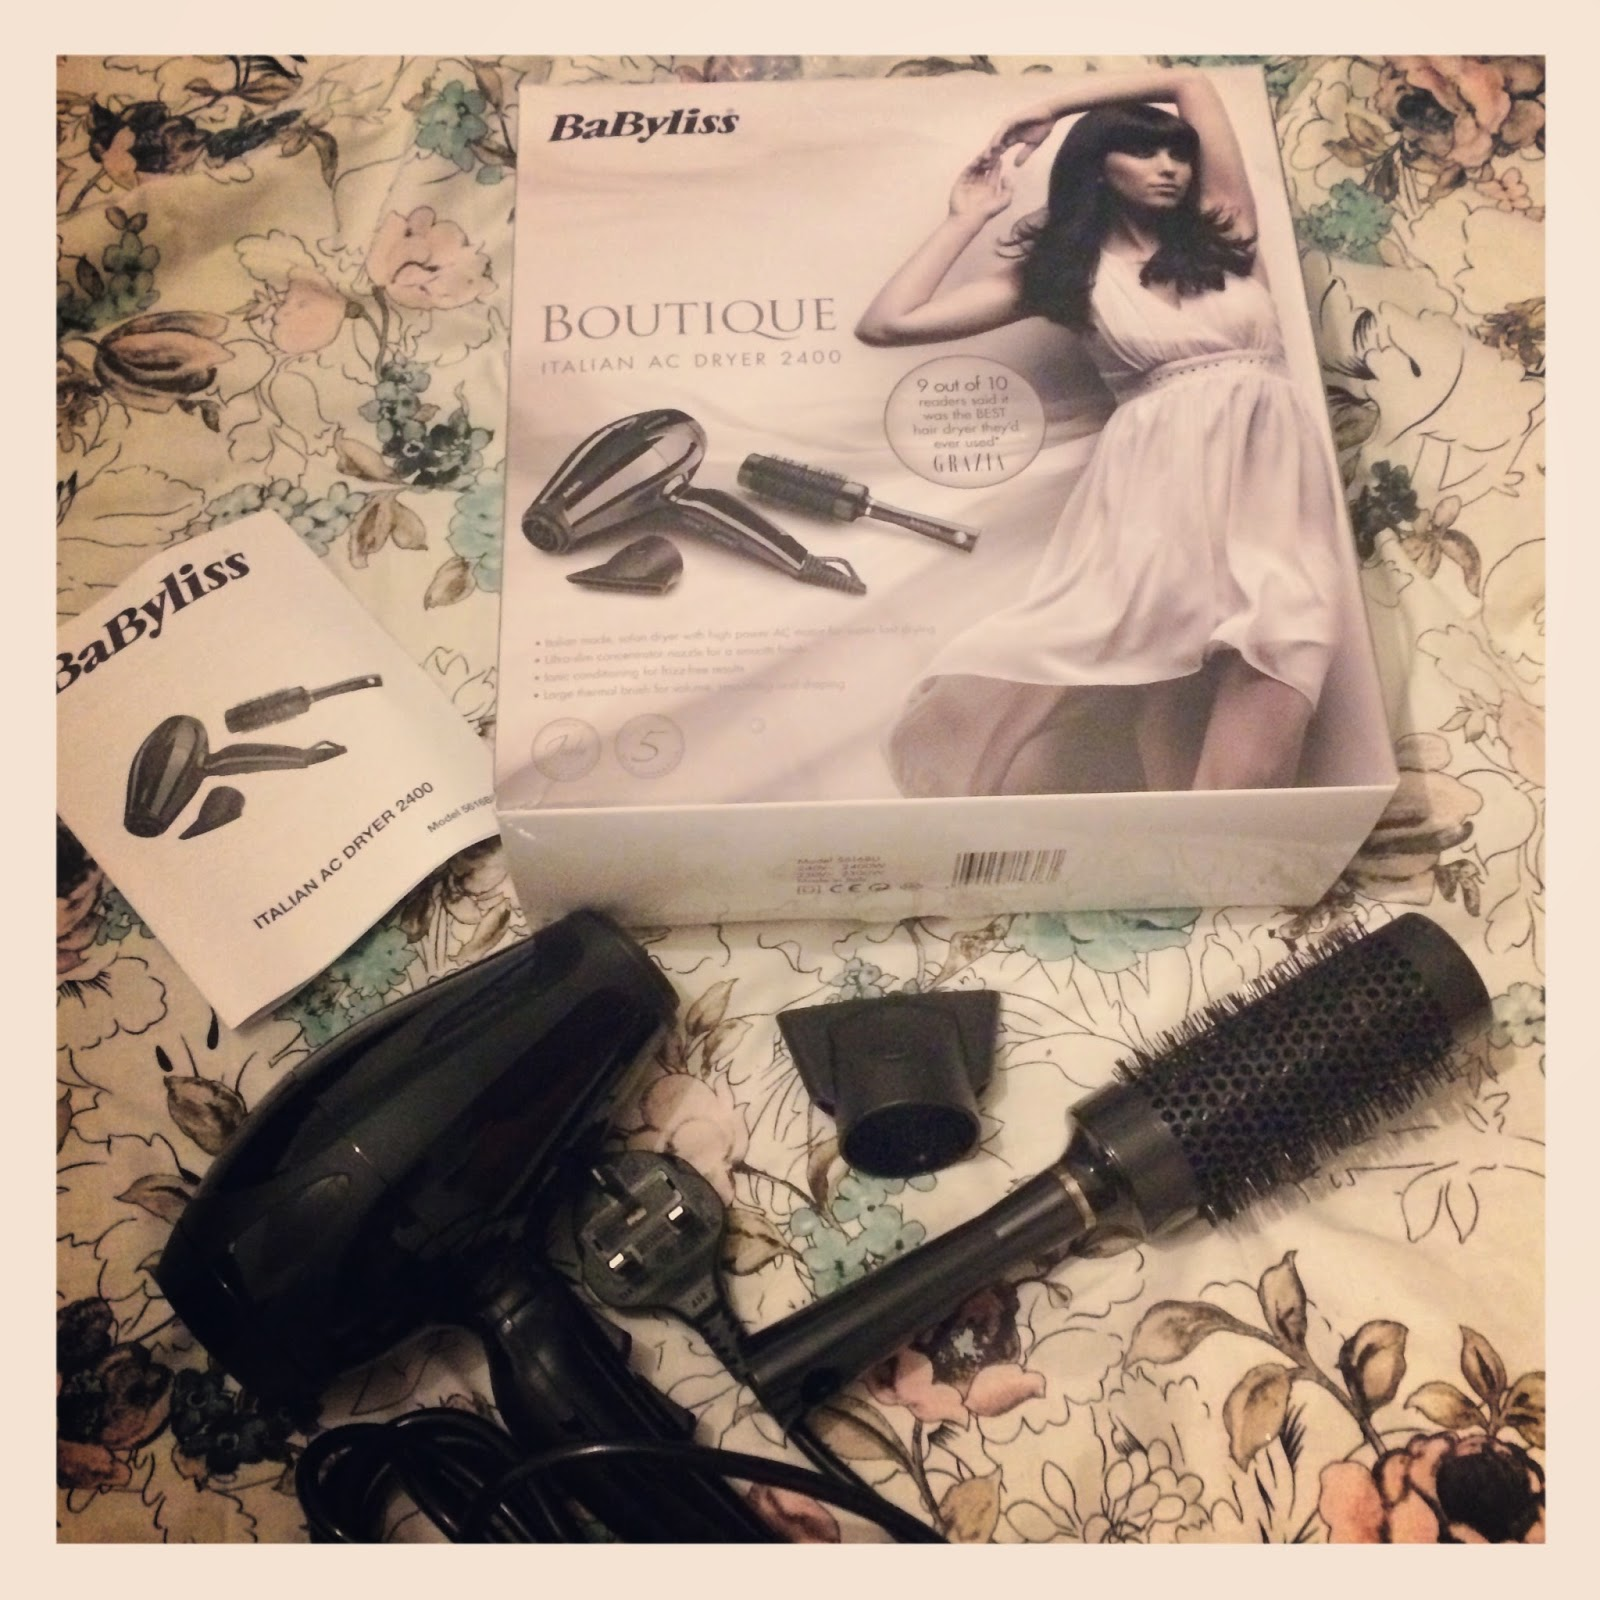 Babyliss Boutique Italian AC Dryer 2400